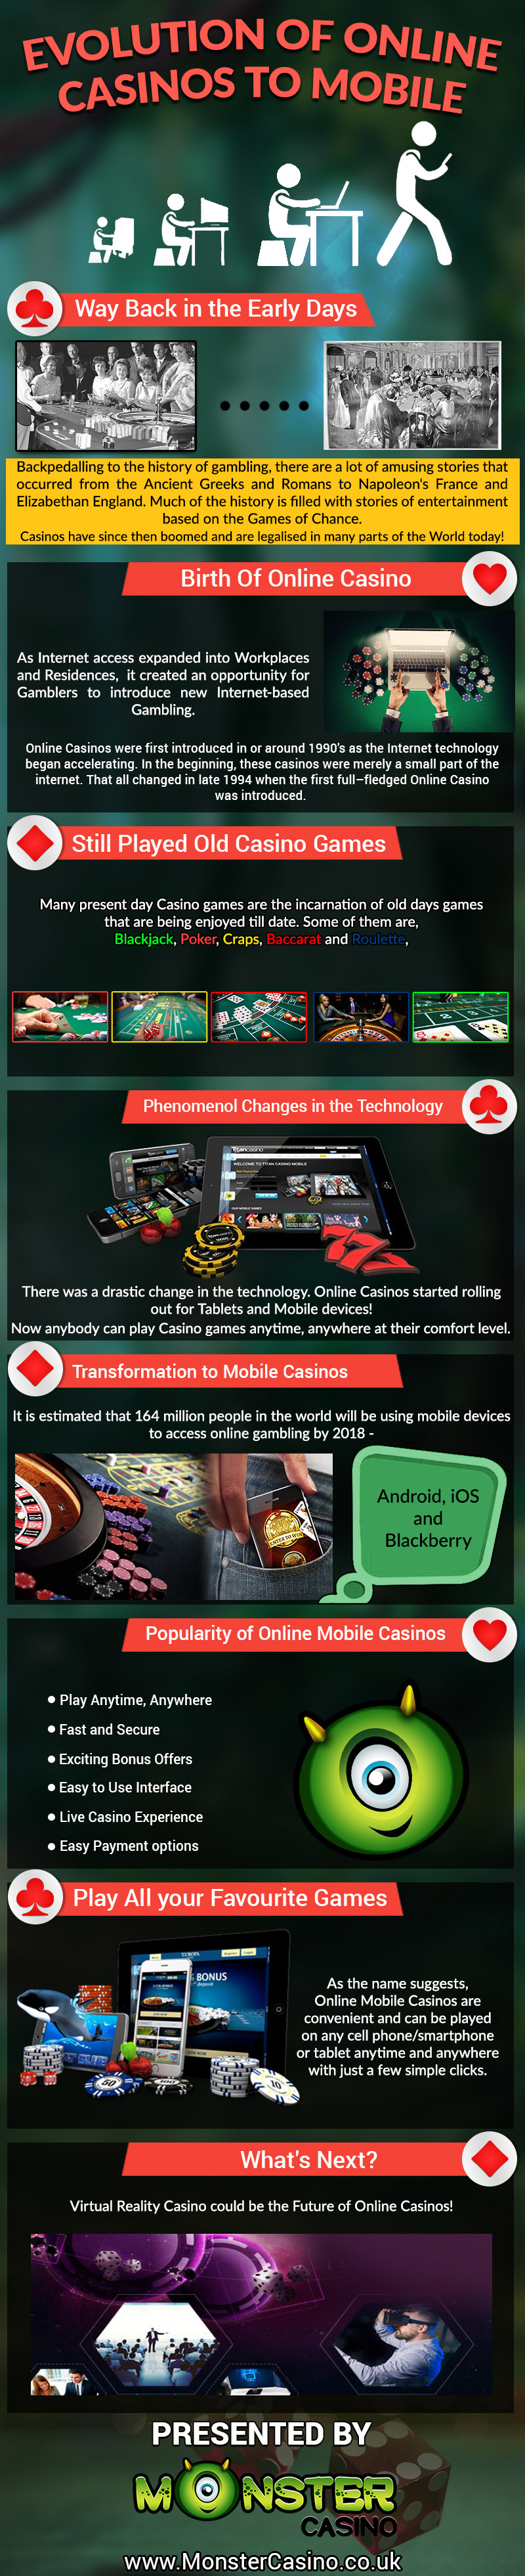 Evolution of Online Casinos to Mobile Casinos